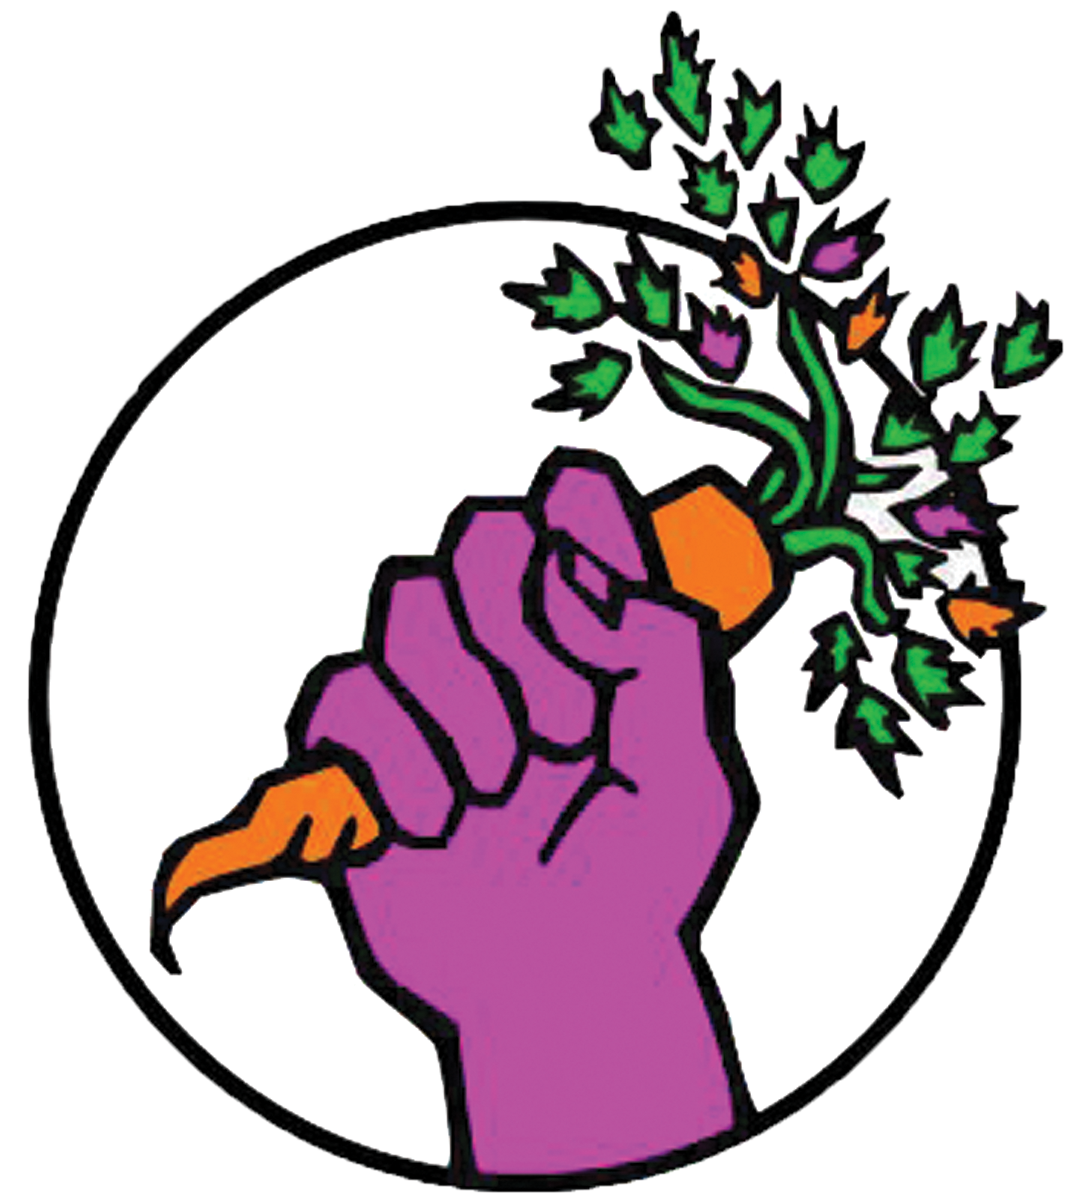 File:Food Not Bombs (emblem).png - Wikimedia Commons